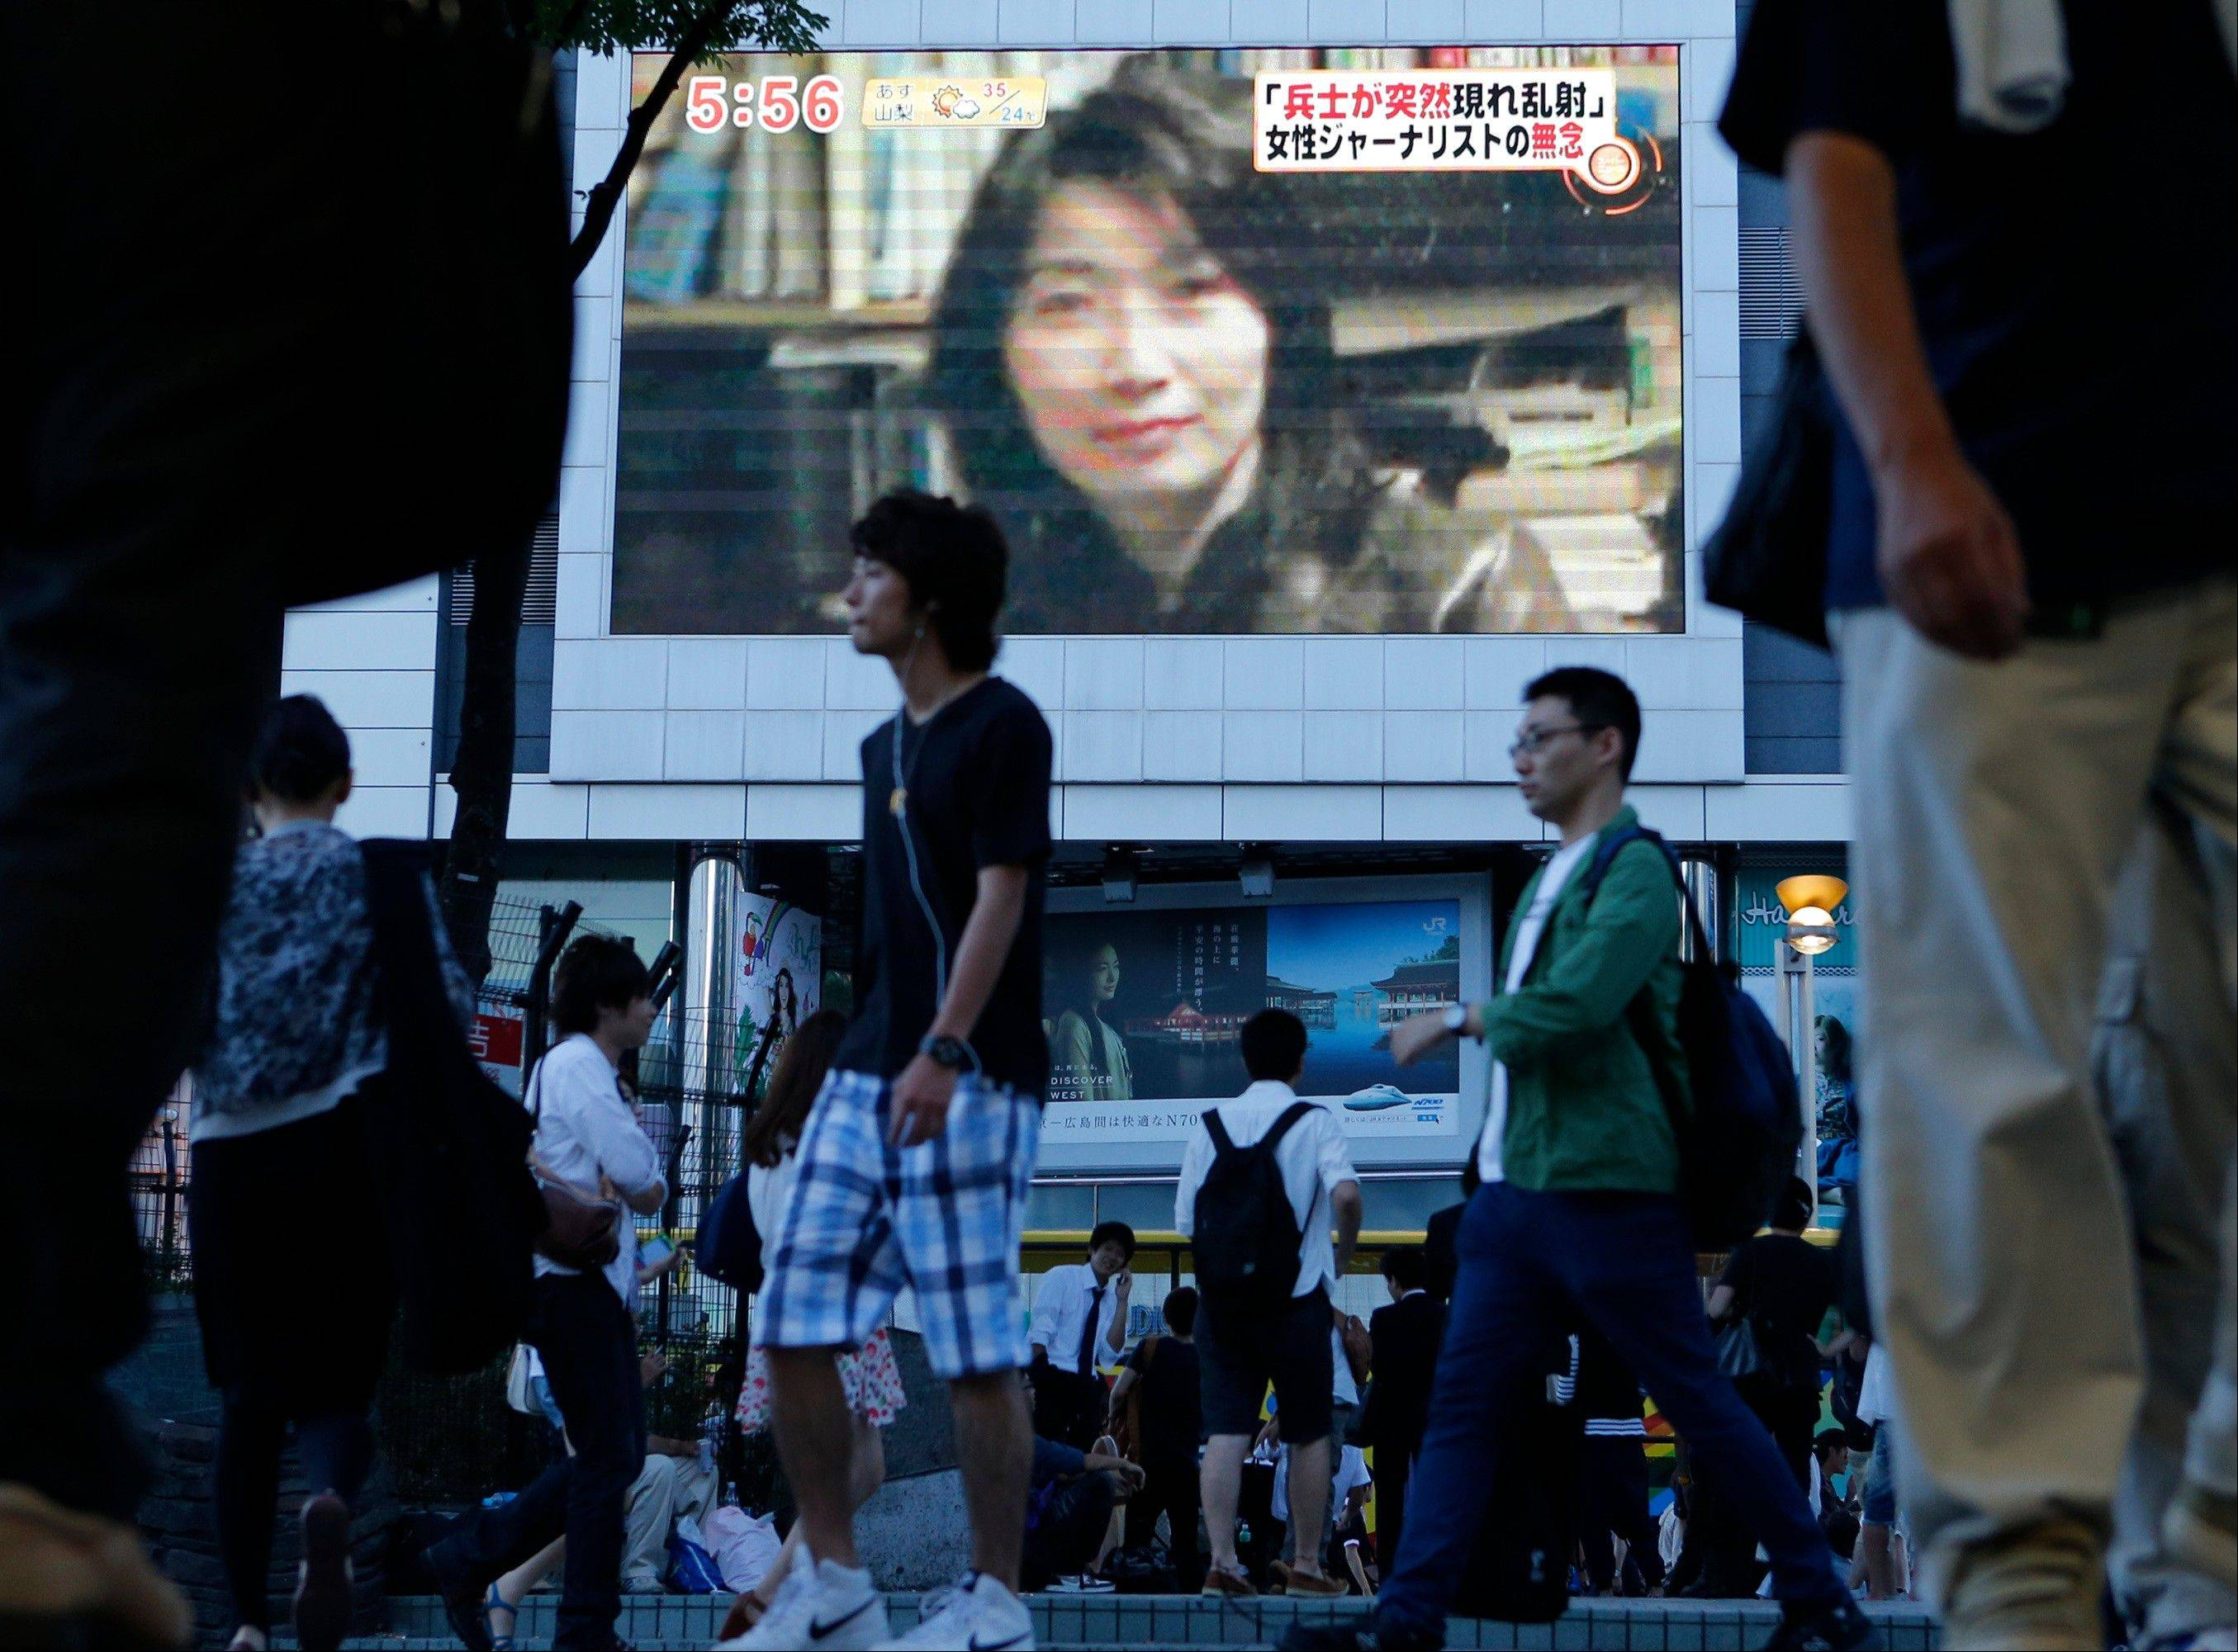 An image of Japanese journalist Mika Yamamoto is shown on a large monitor screen in Tokyo Tuesday, Aug. 21, 2012 during a TV news broadcast reporting her death in Syria. Yamamoto, a veteran war correspondent with The Japan Press, an independent TV news provider that specializes in conflict zone coverage, was killed Monday in the northwestern city of Aleppo, said Masaru Sato, a spokesman with the Foreign Ministry in Tokyo.